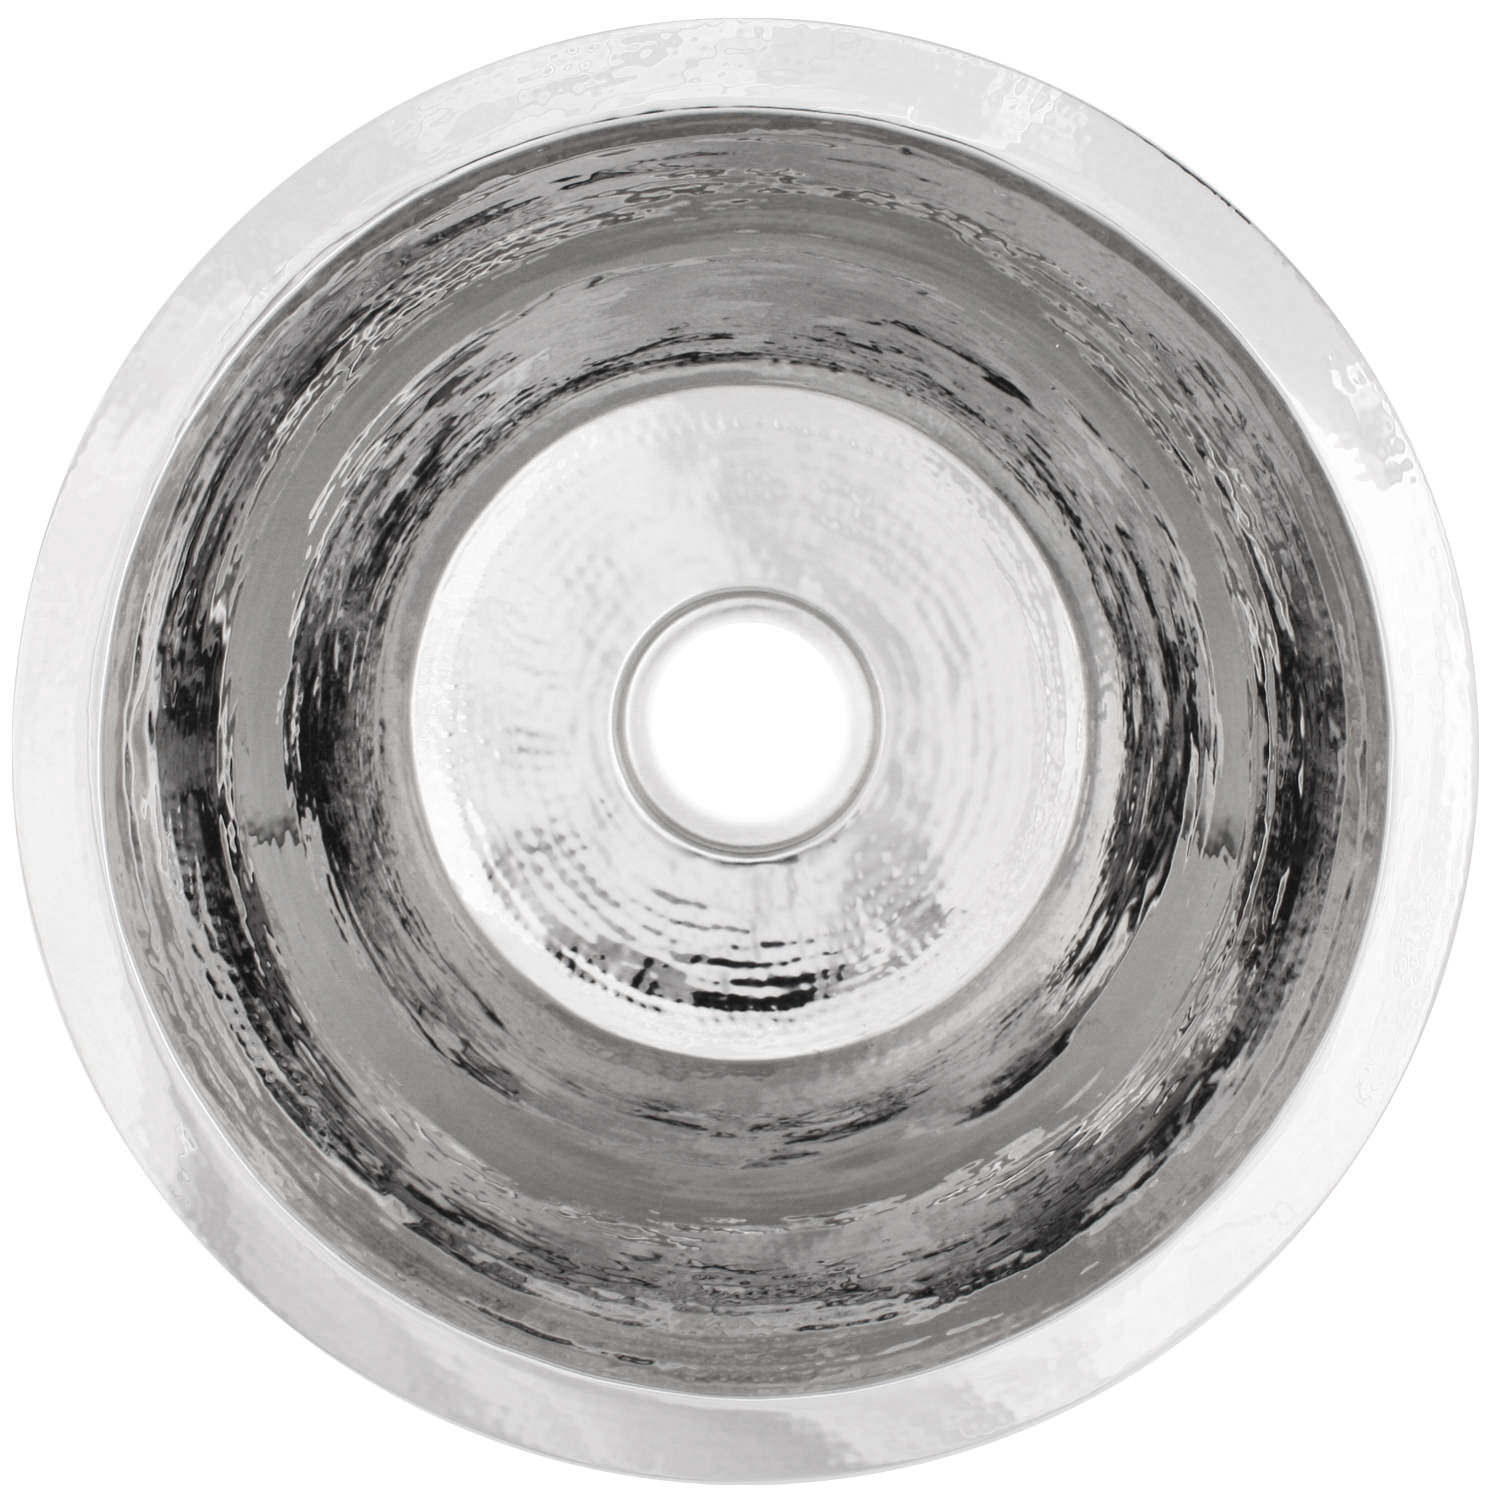 "Linkasink Kitchen Sinks - Linkasink C017-PS Small Flat Round Stainless Steel Sink - 3.5"" drain - Polished"